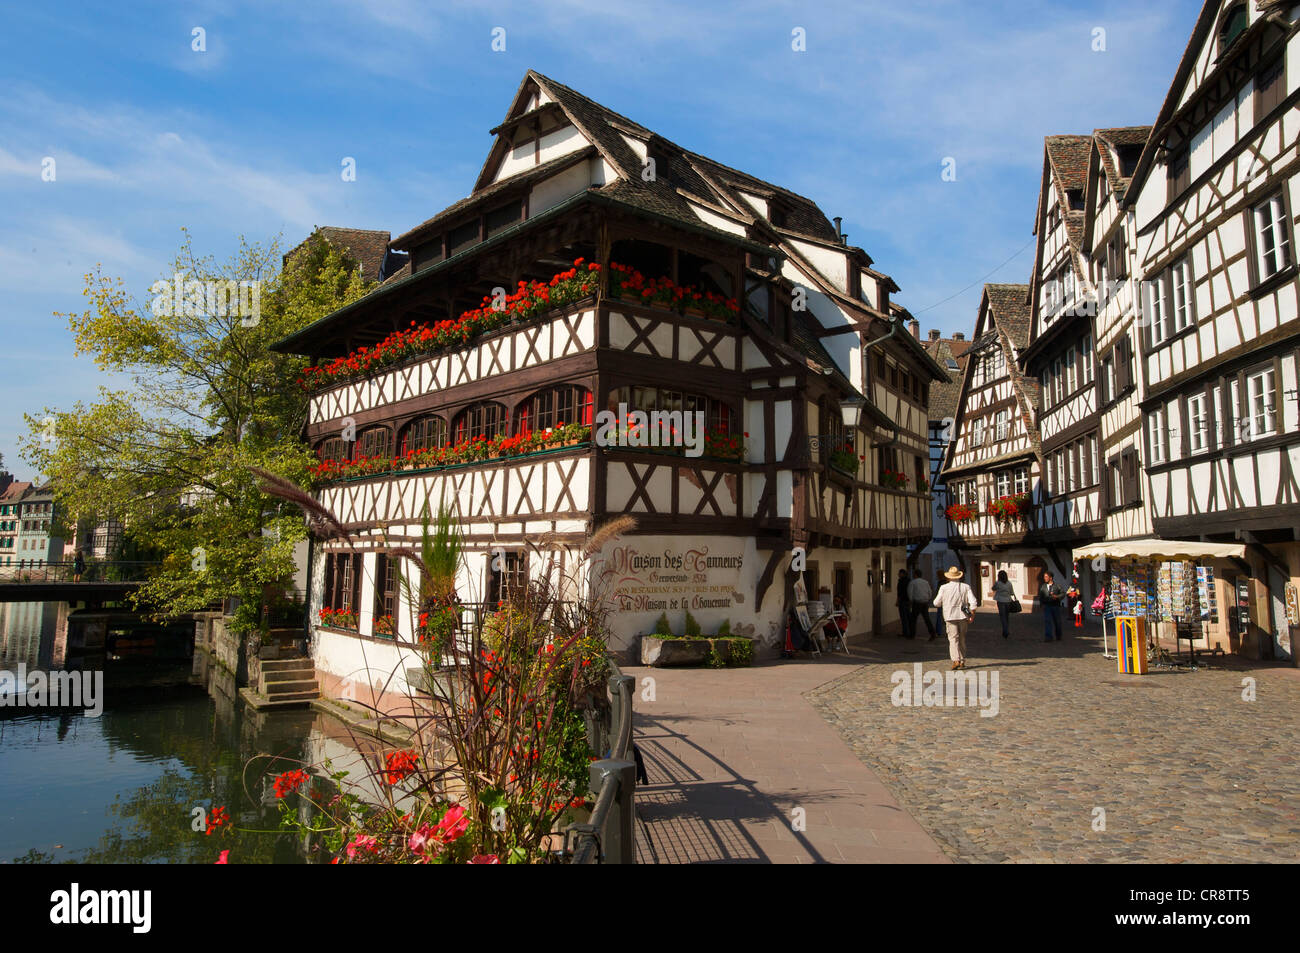 Restaurant exterior strasbourg france stockfotos for Cuisine maison france 5